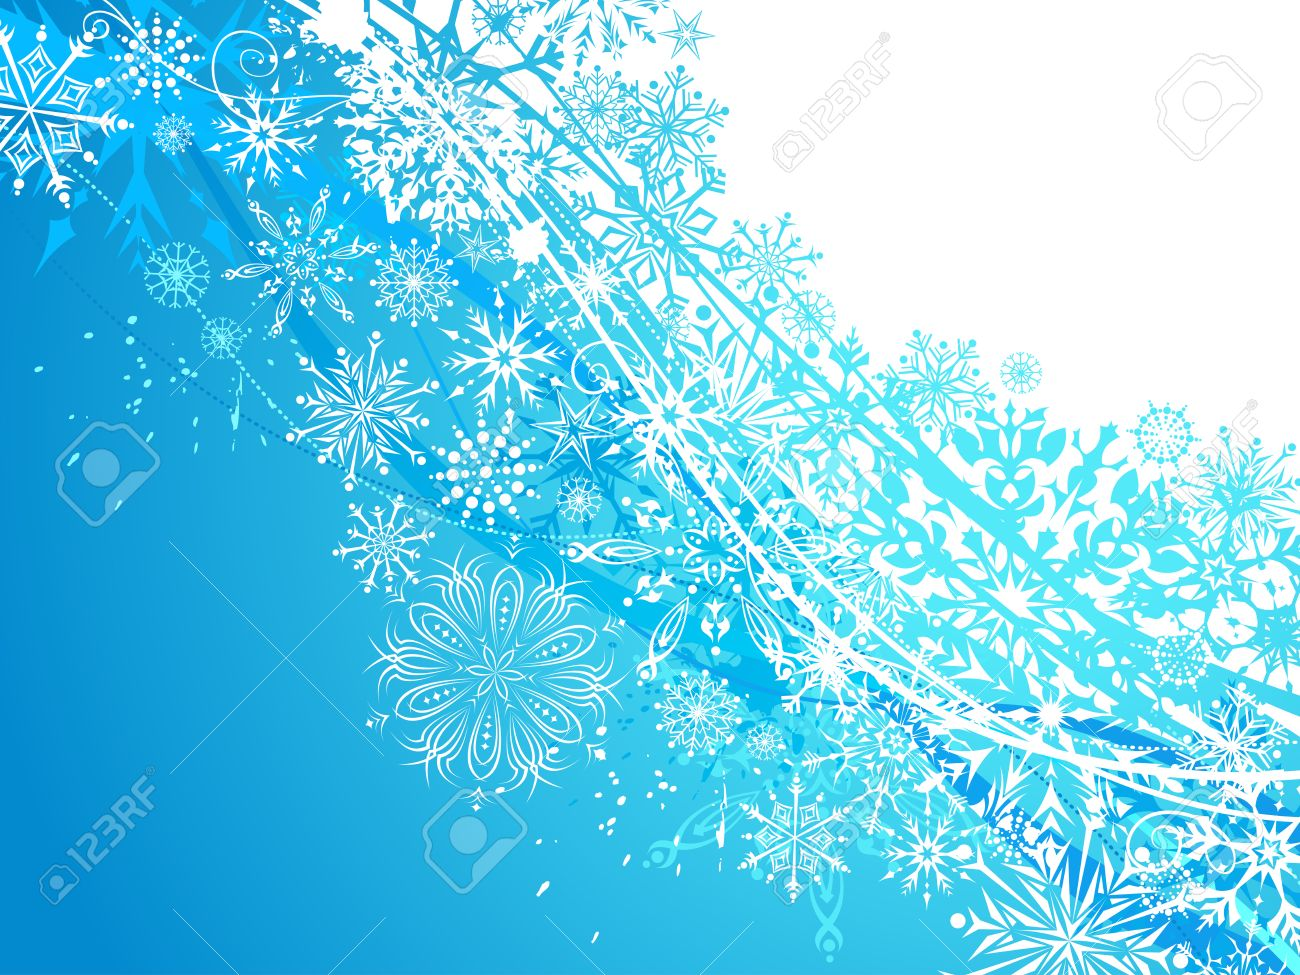 Winter Background With Snowflakes White And Blue Ornate Snowflakes